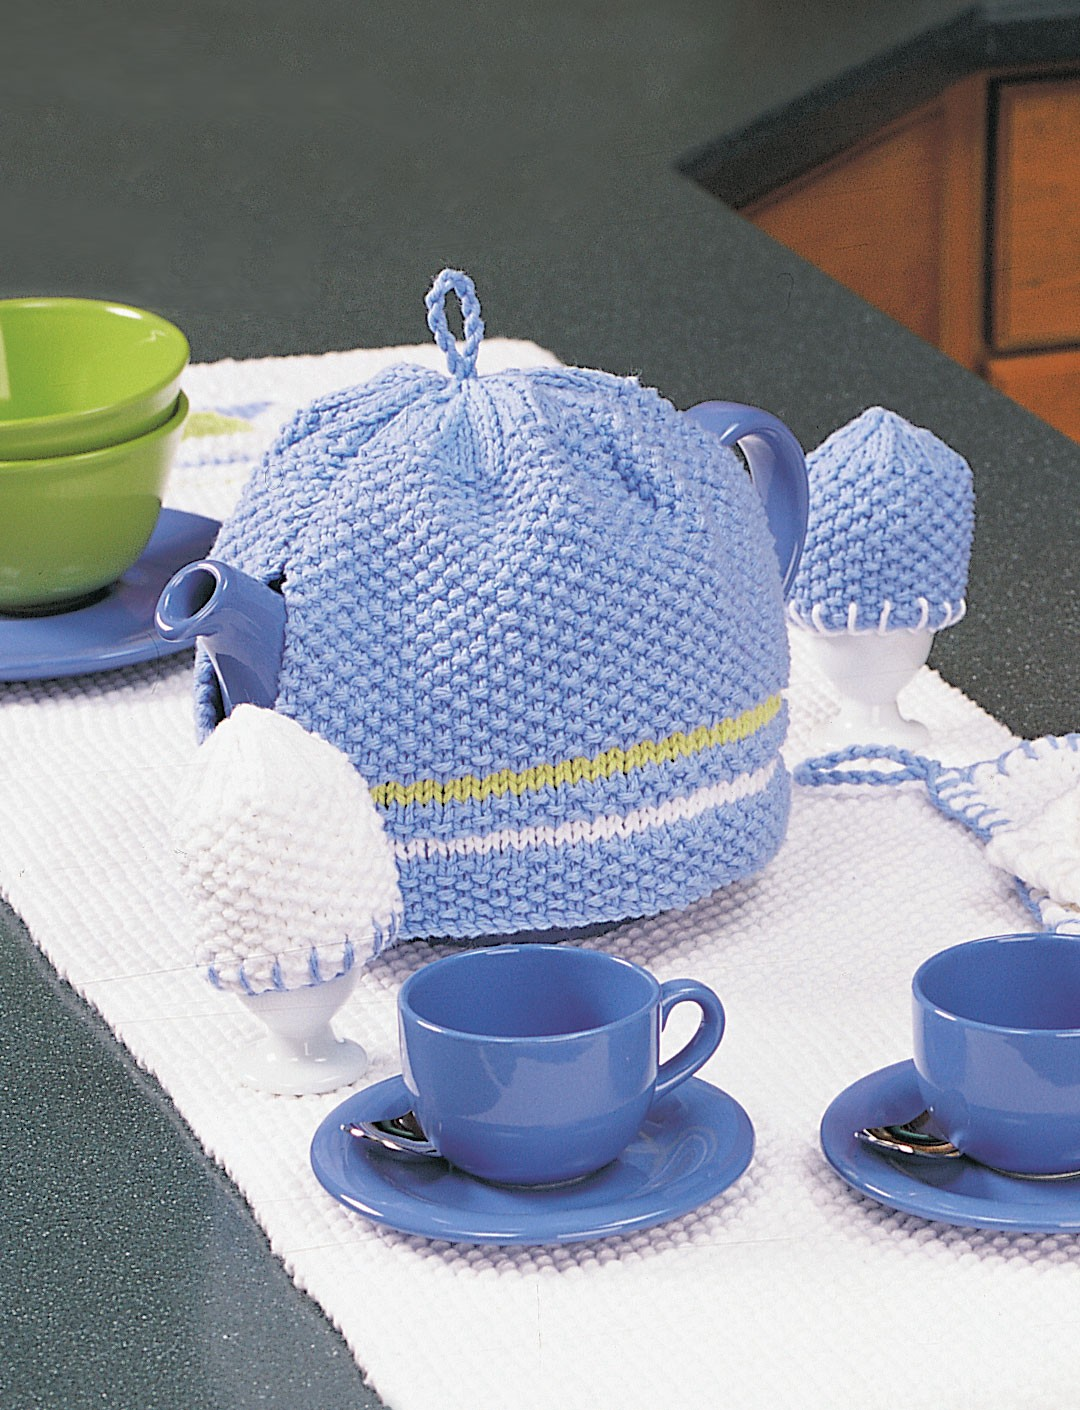 Tea Cozy and Egg Cozy